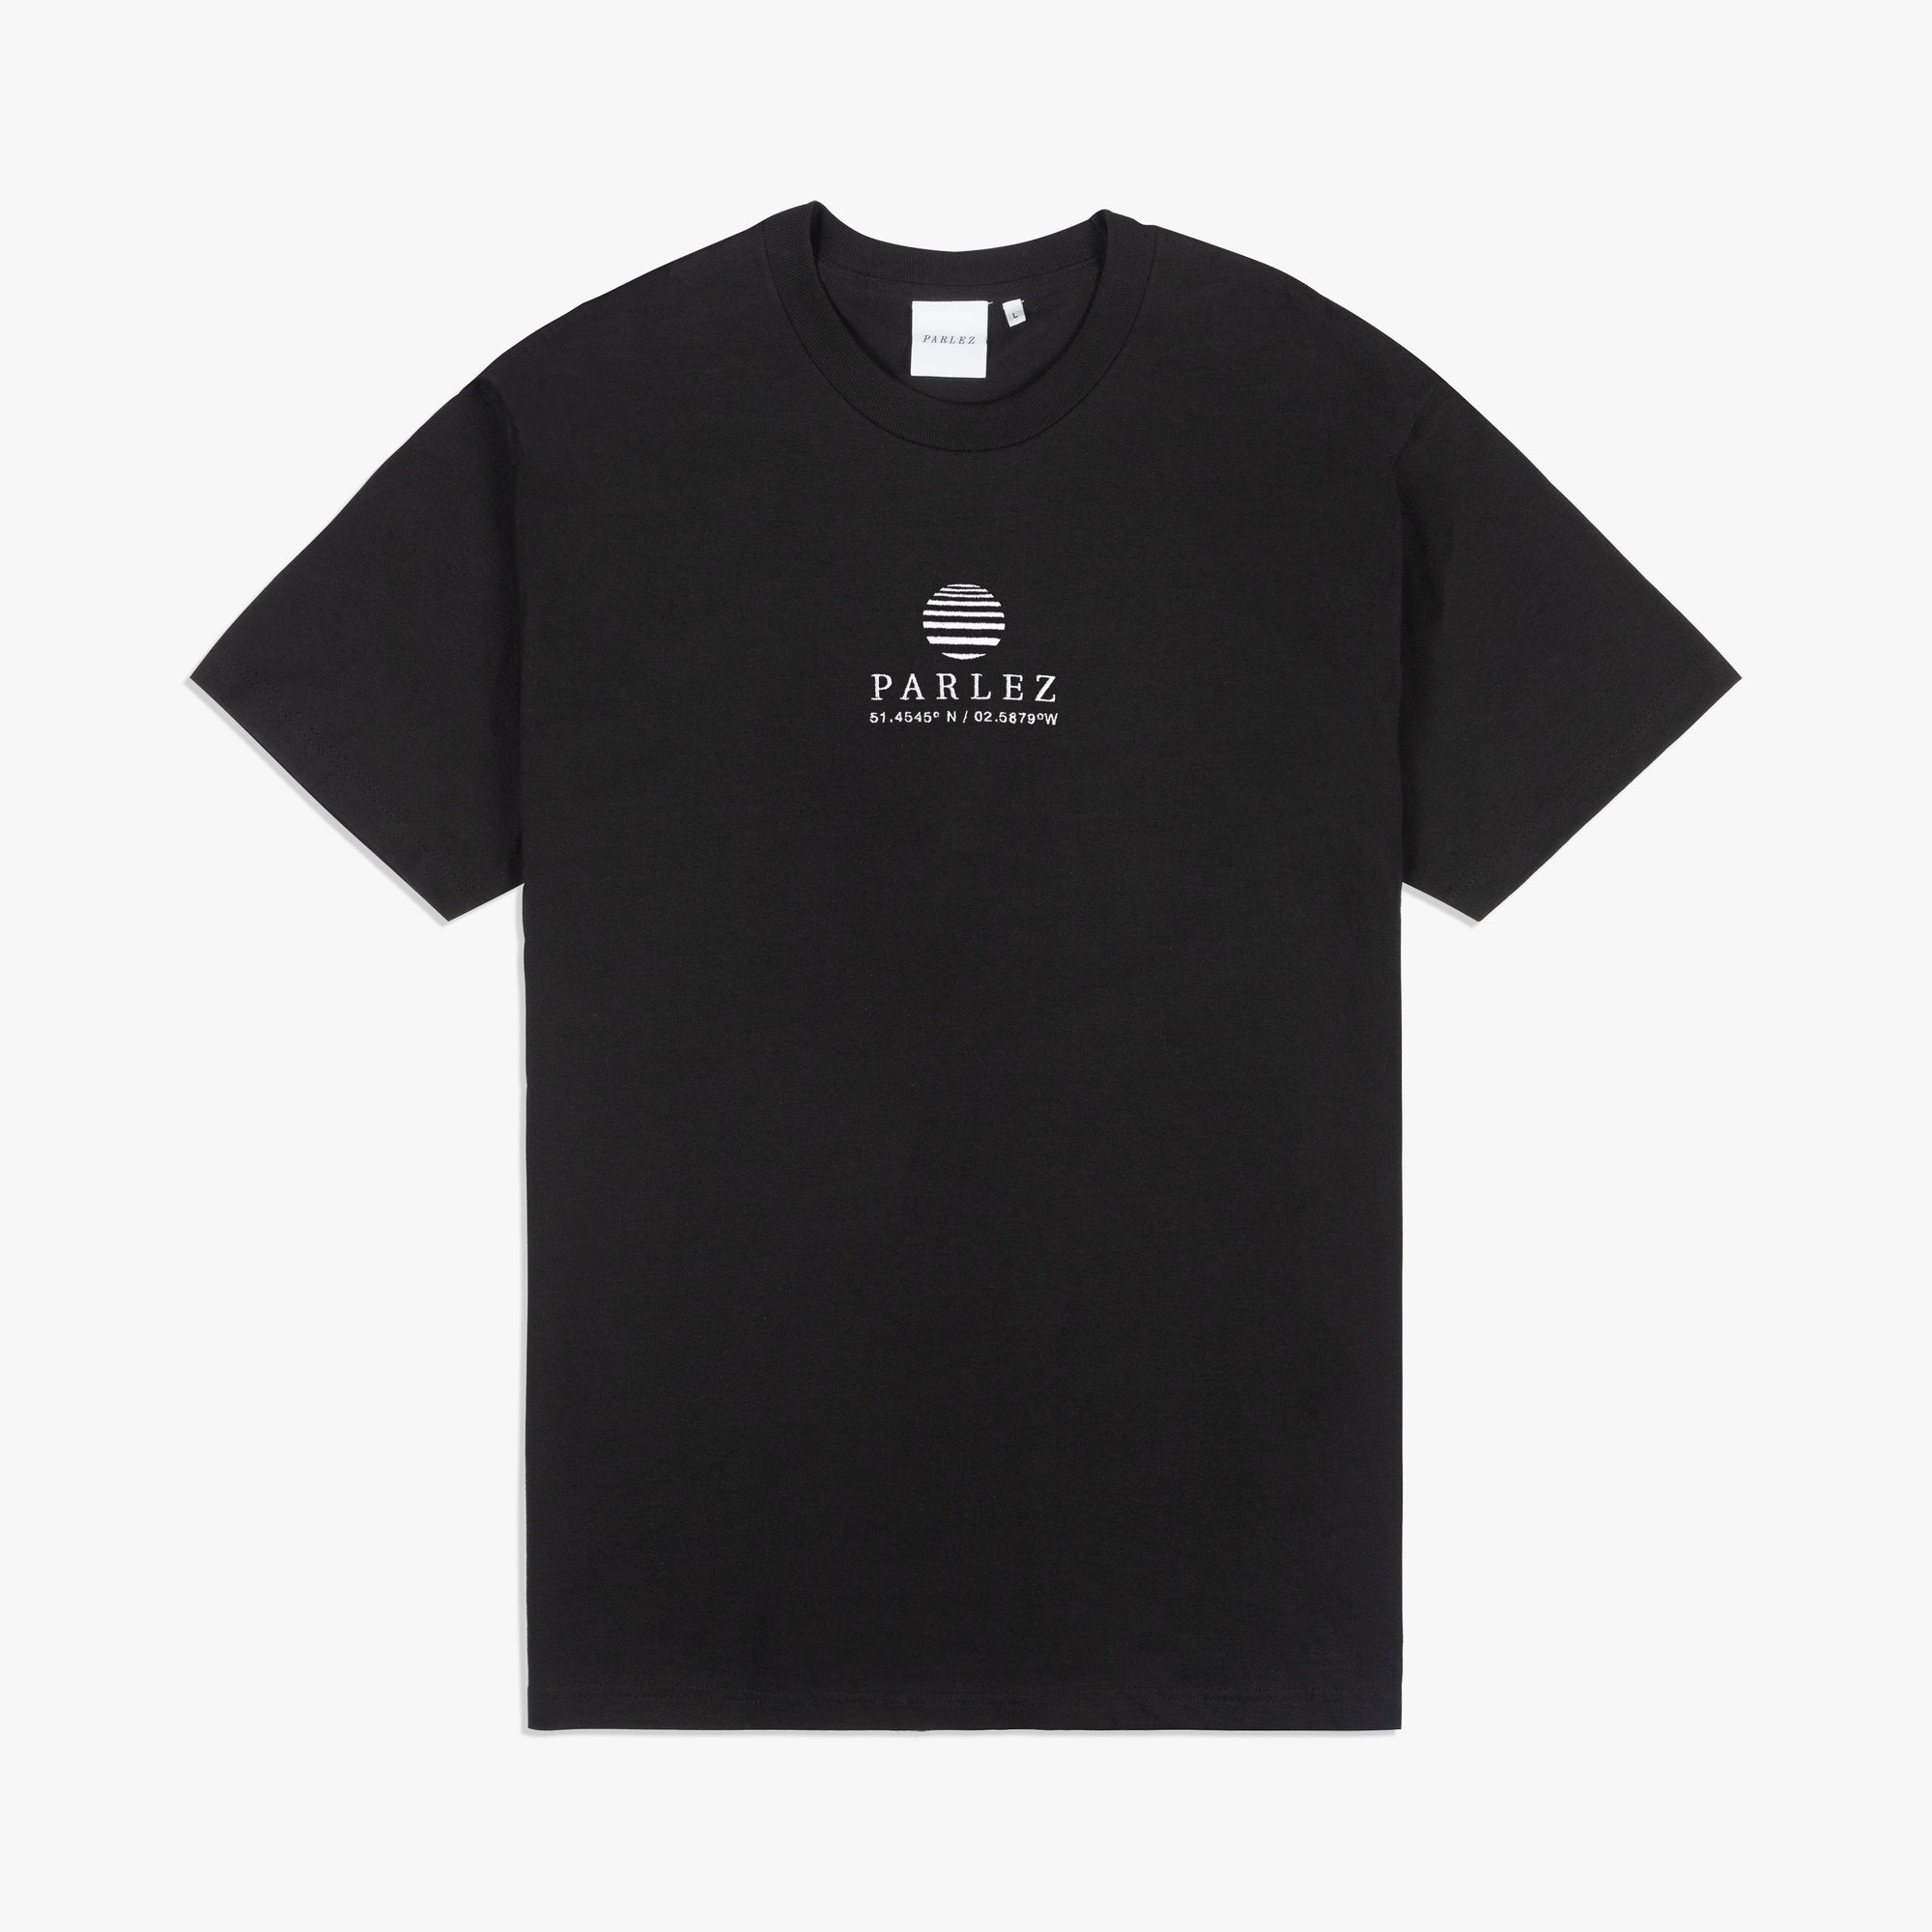 Purcel T-Shirt Black